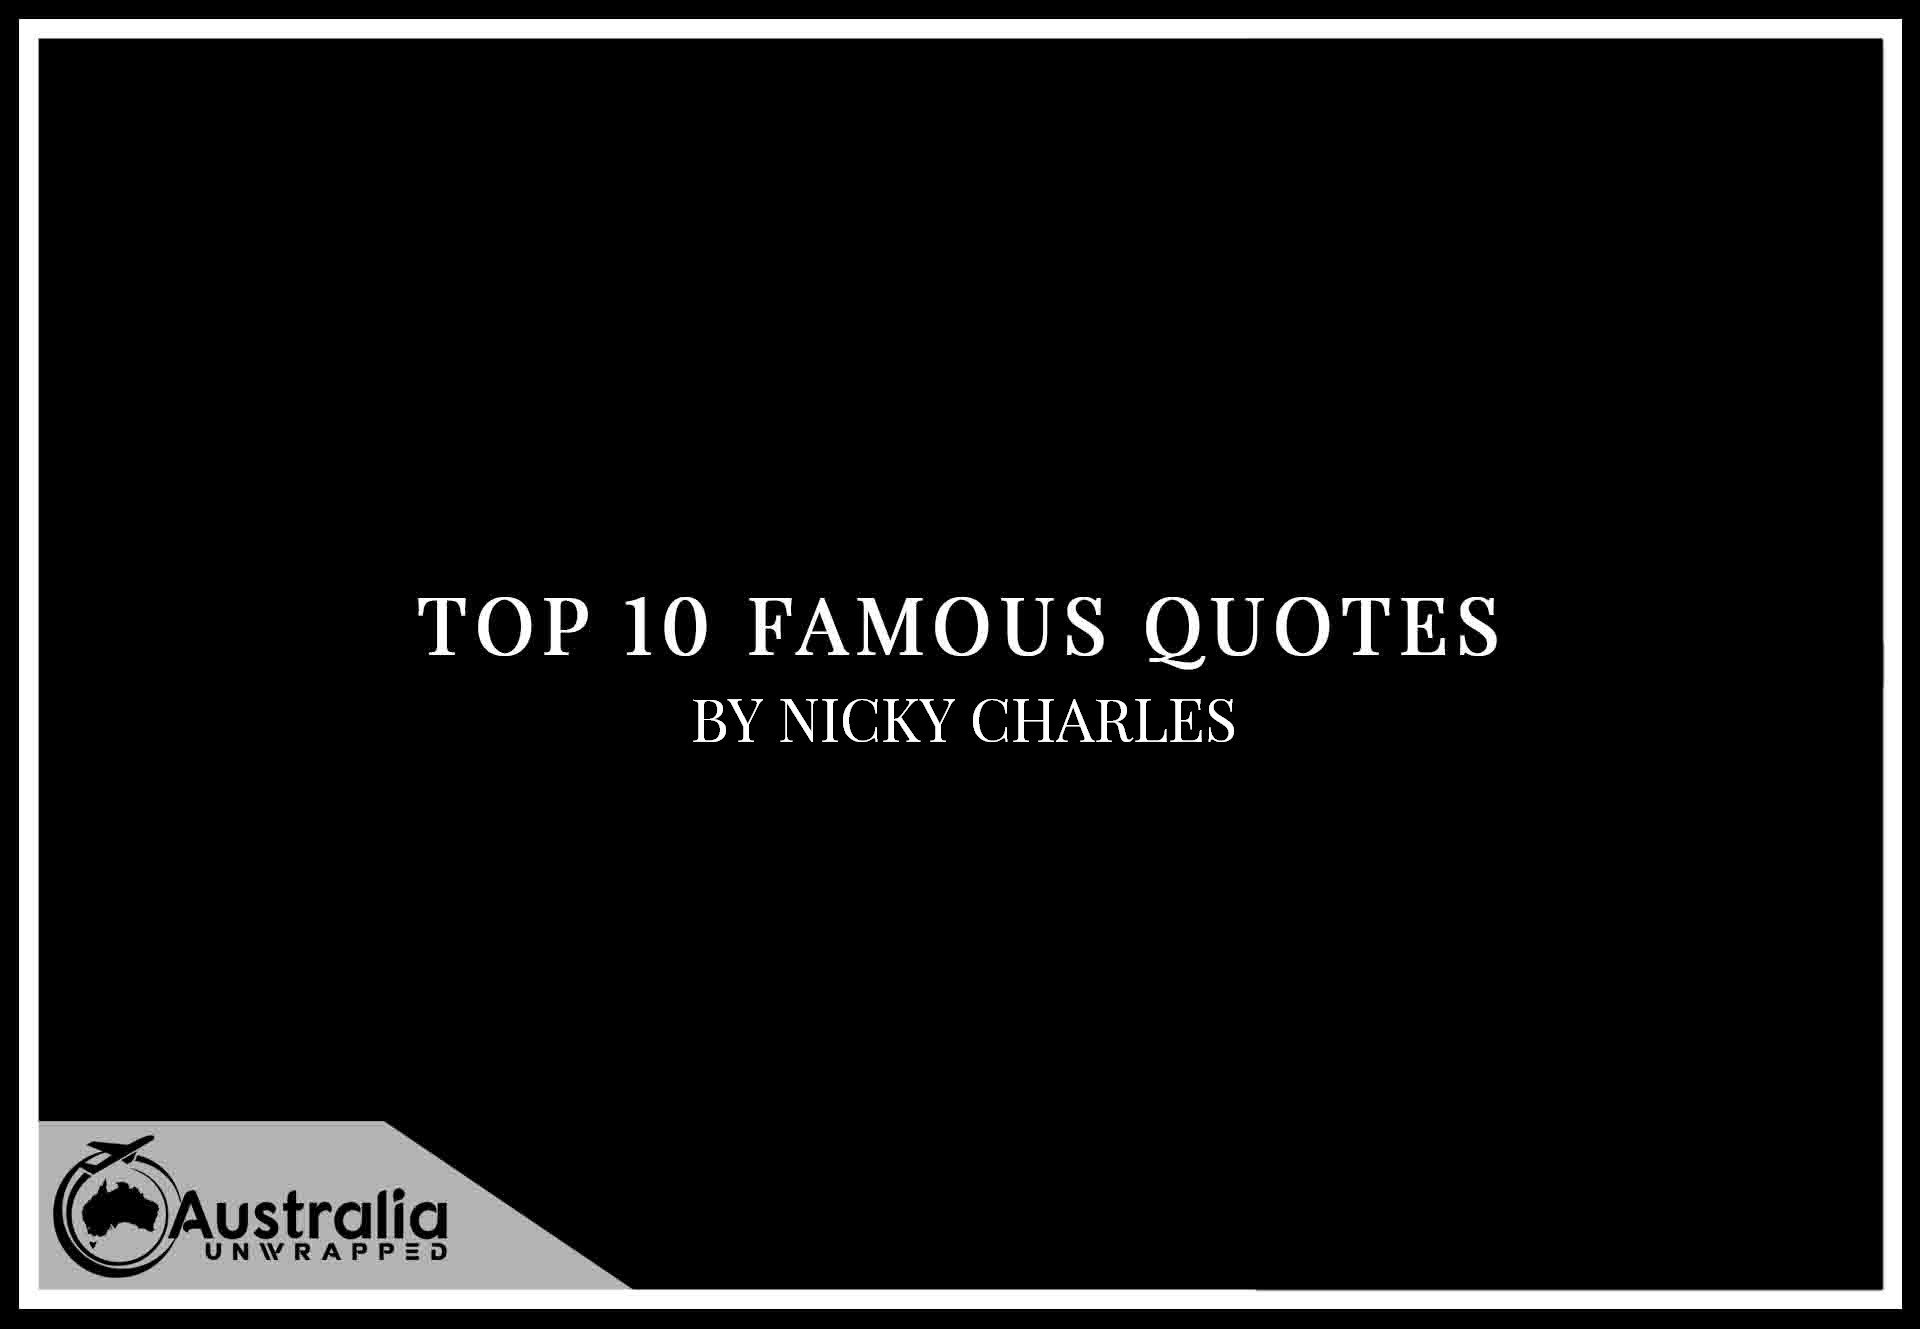 Top 10 Famous Quotes by Author Nicky Charles